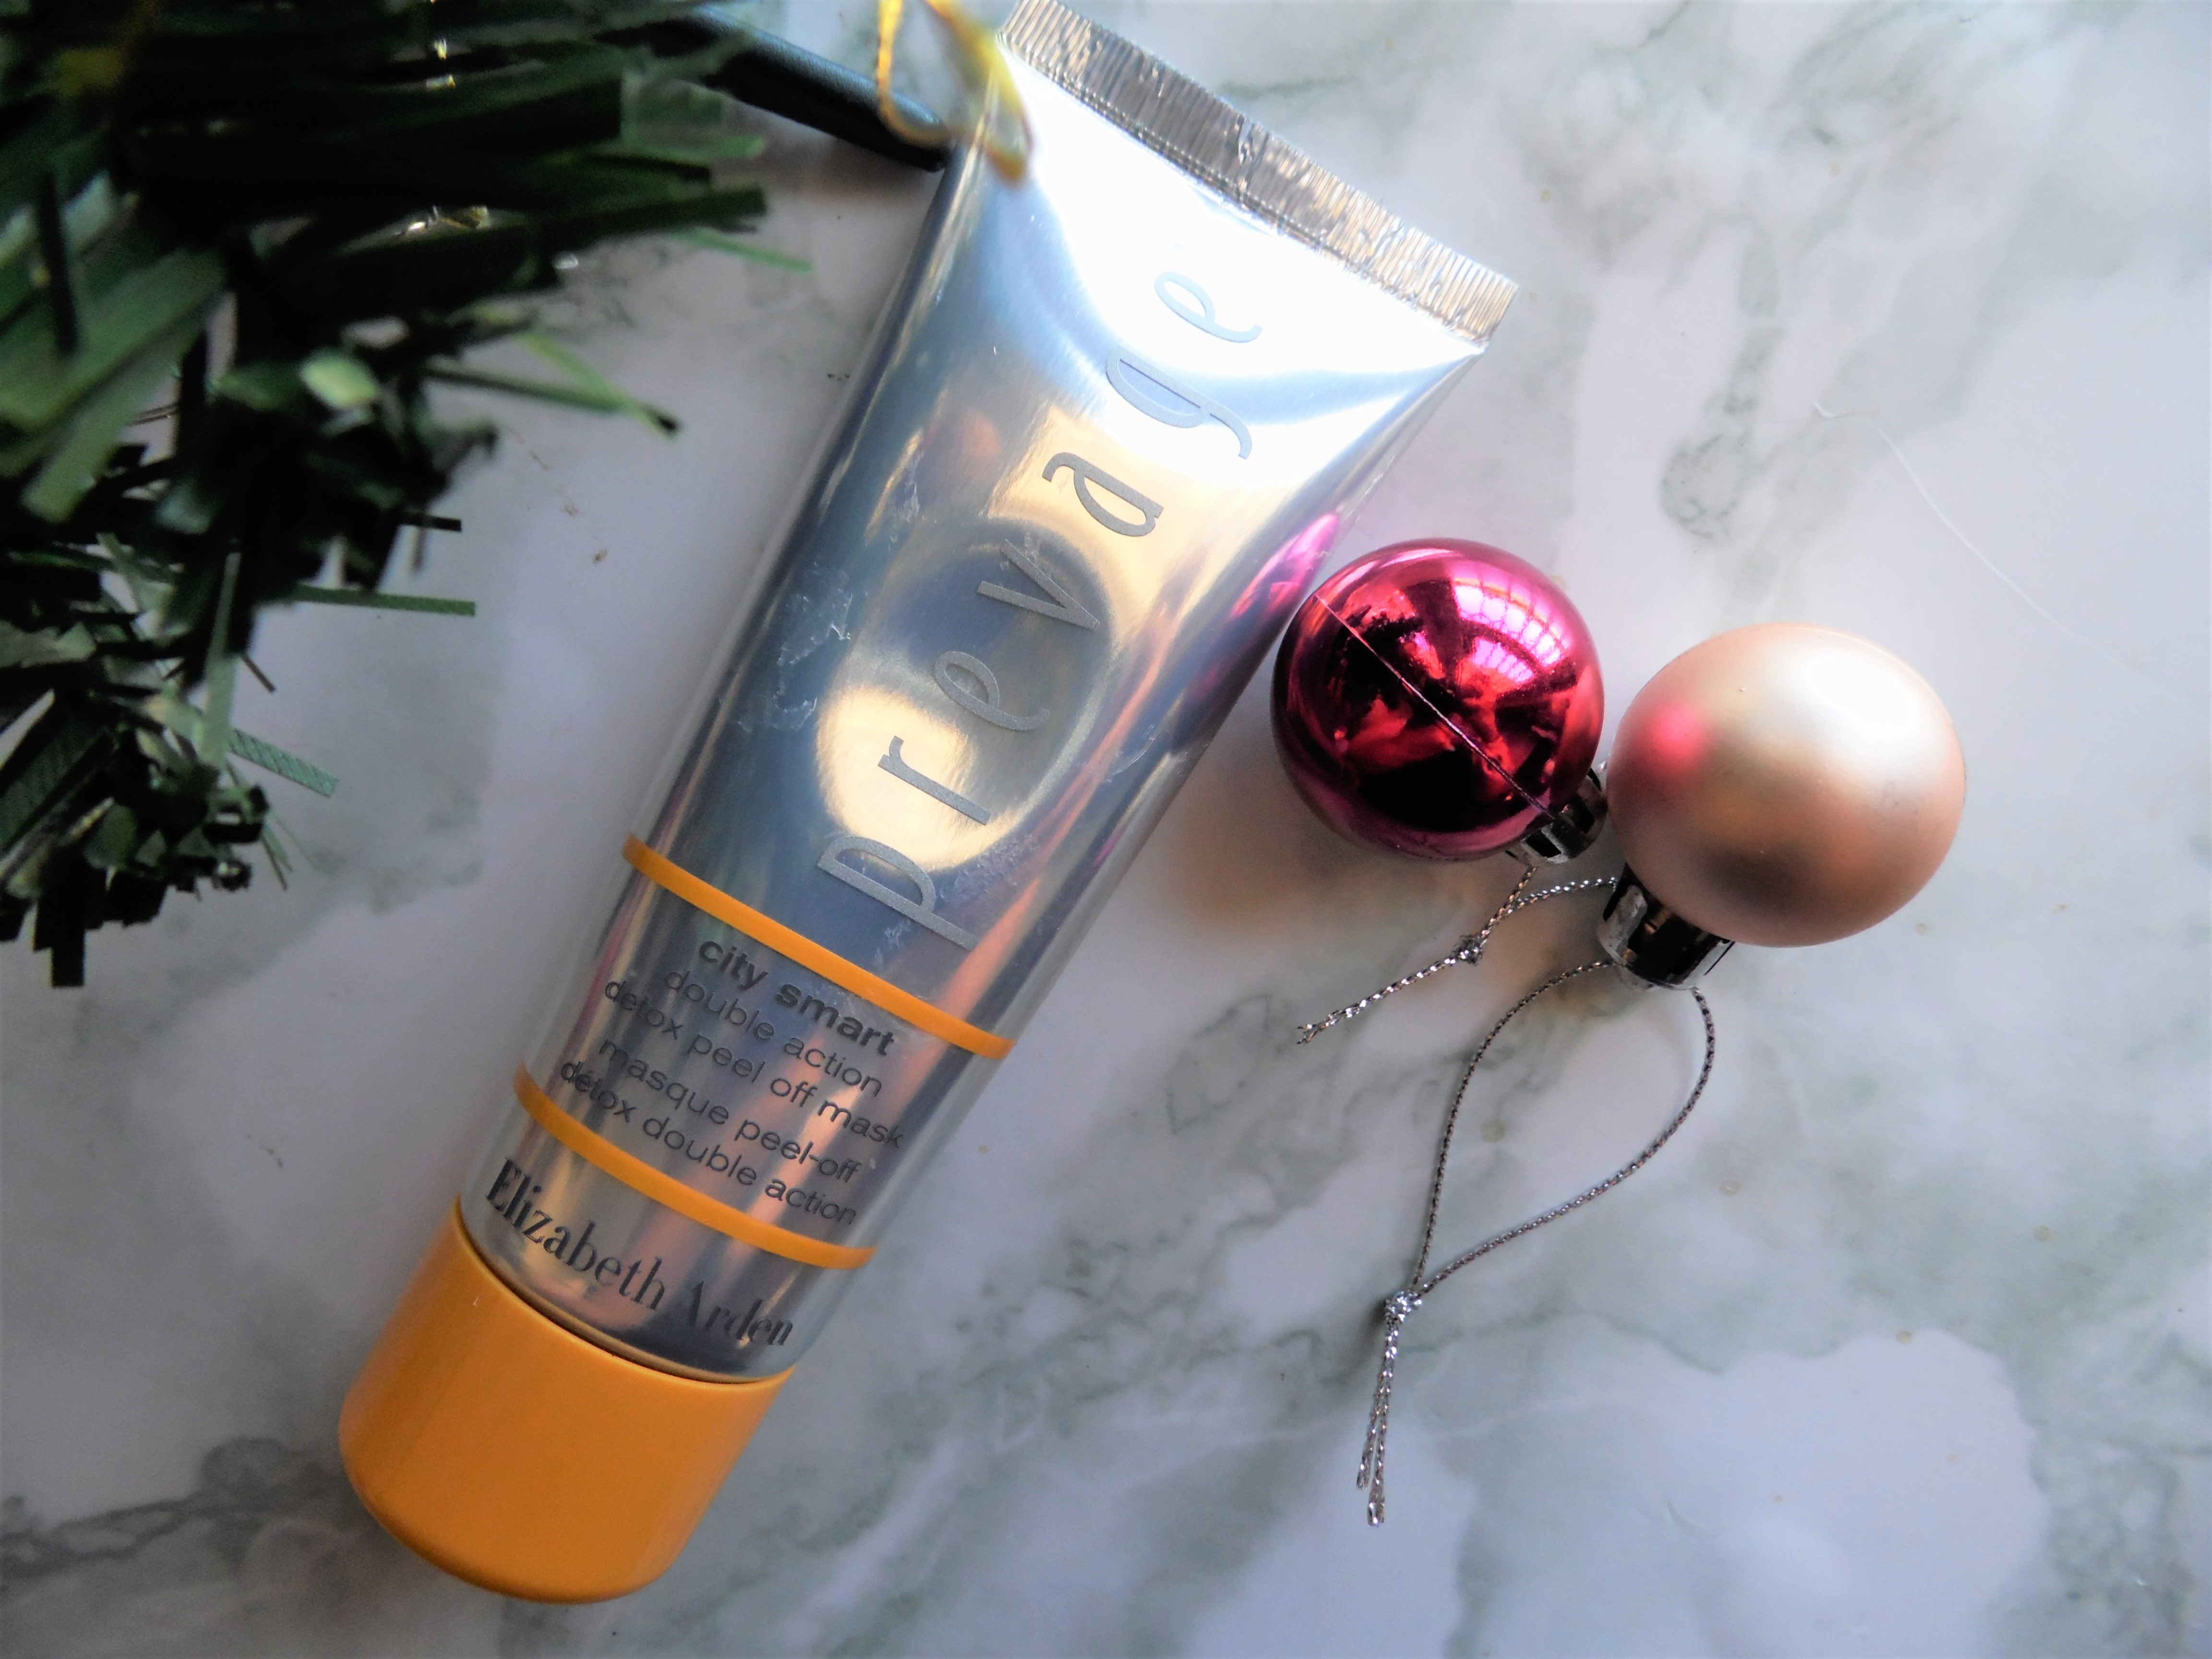 Elizabeth Arden Prevage - By Megan Kelly